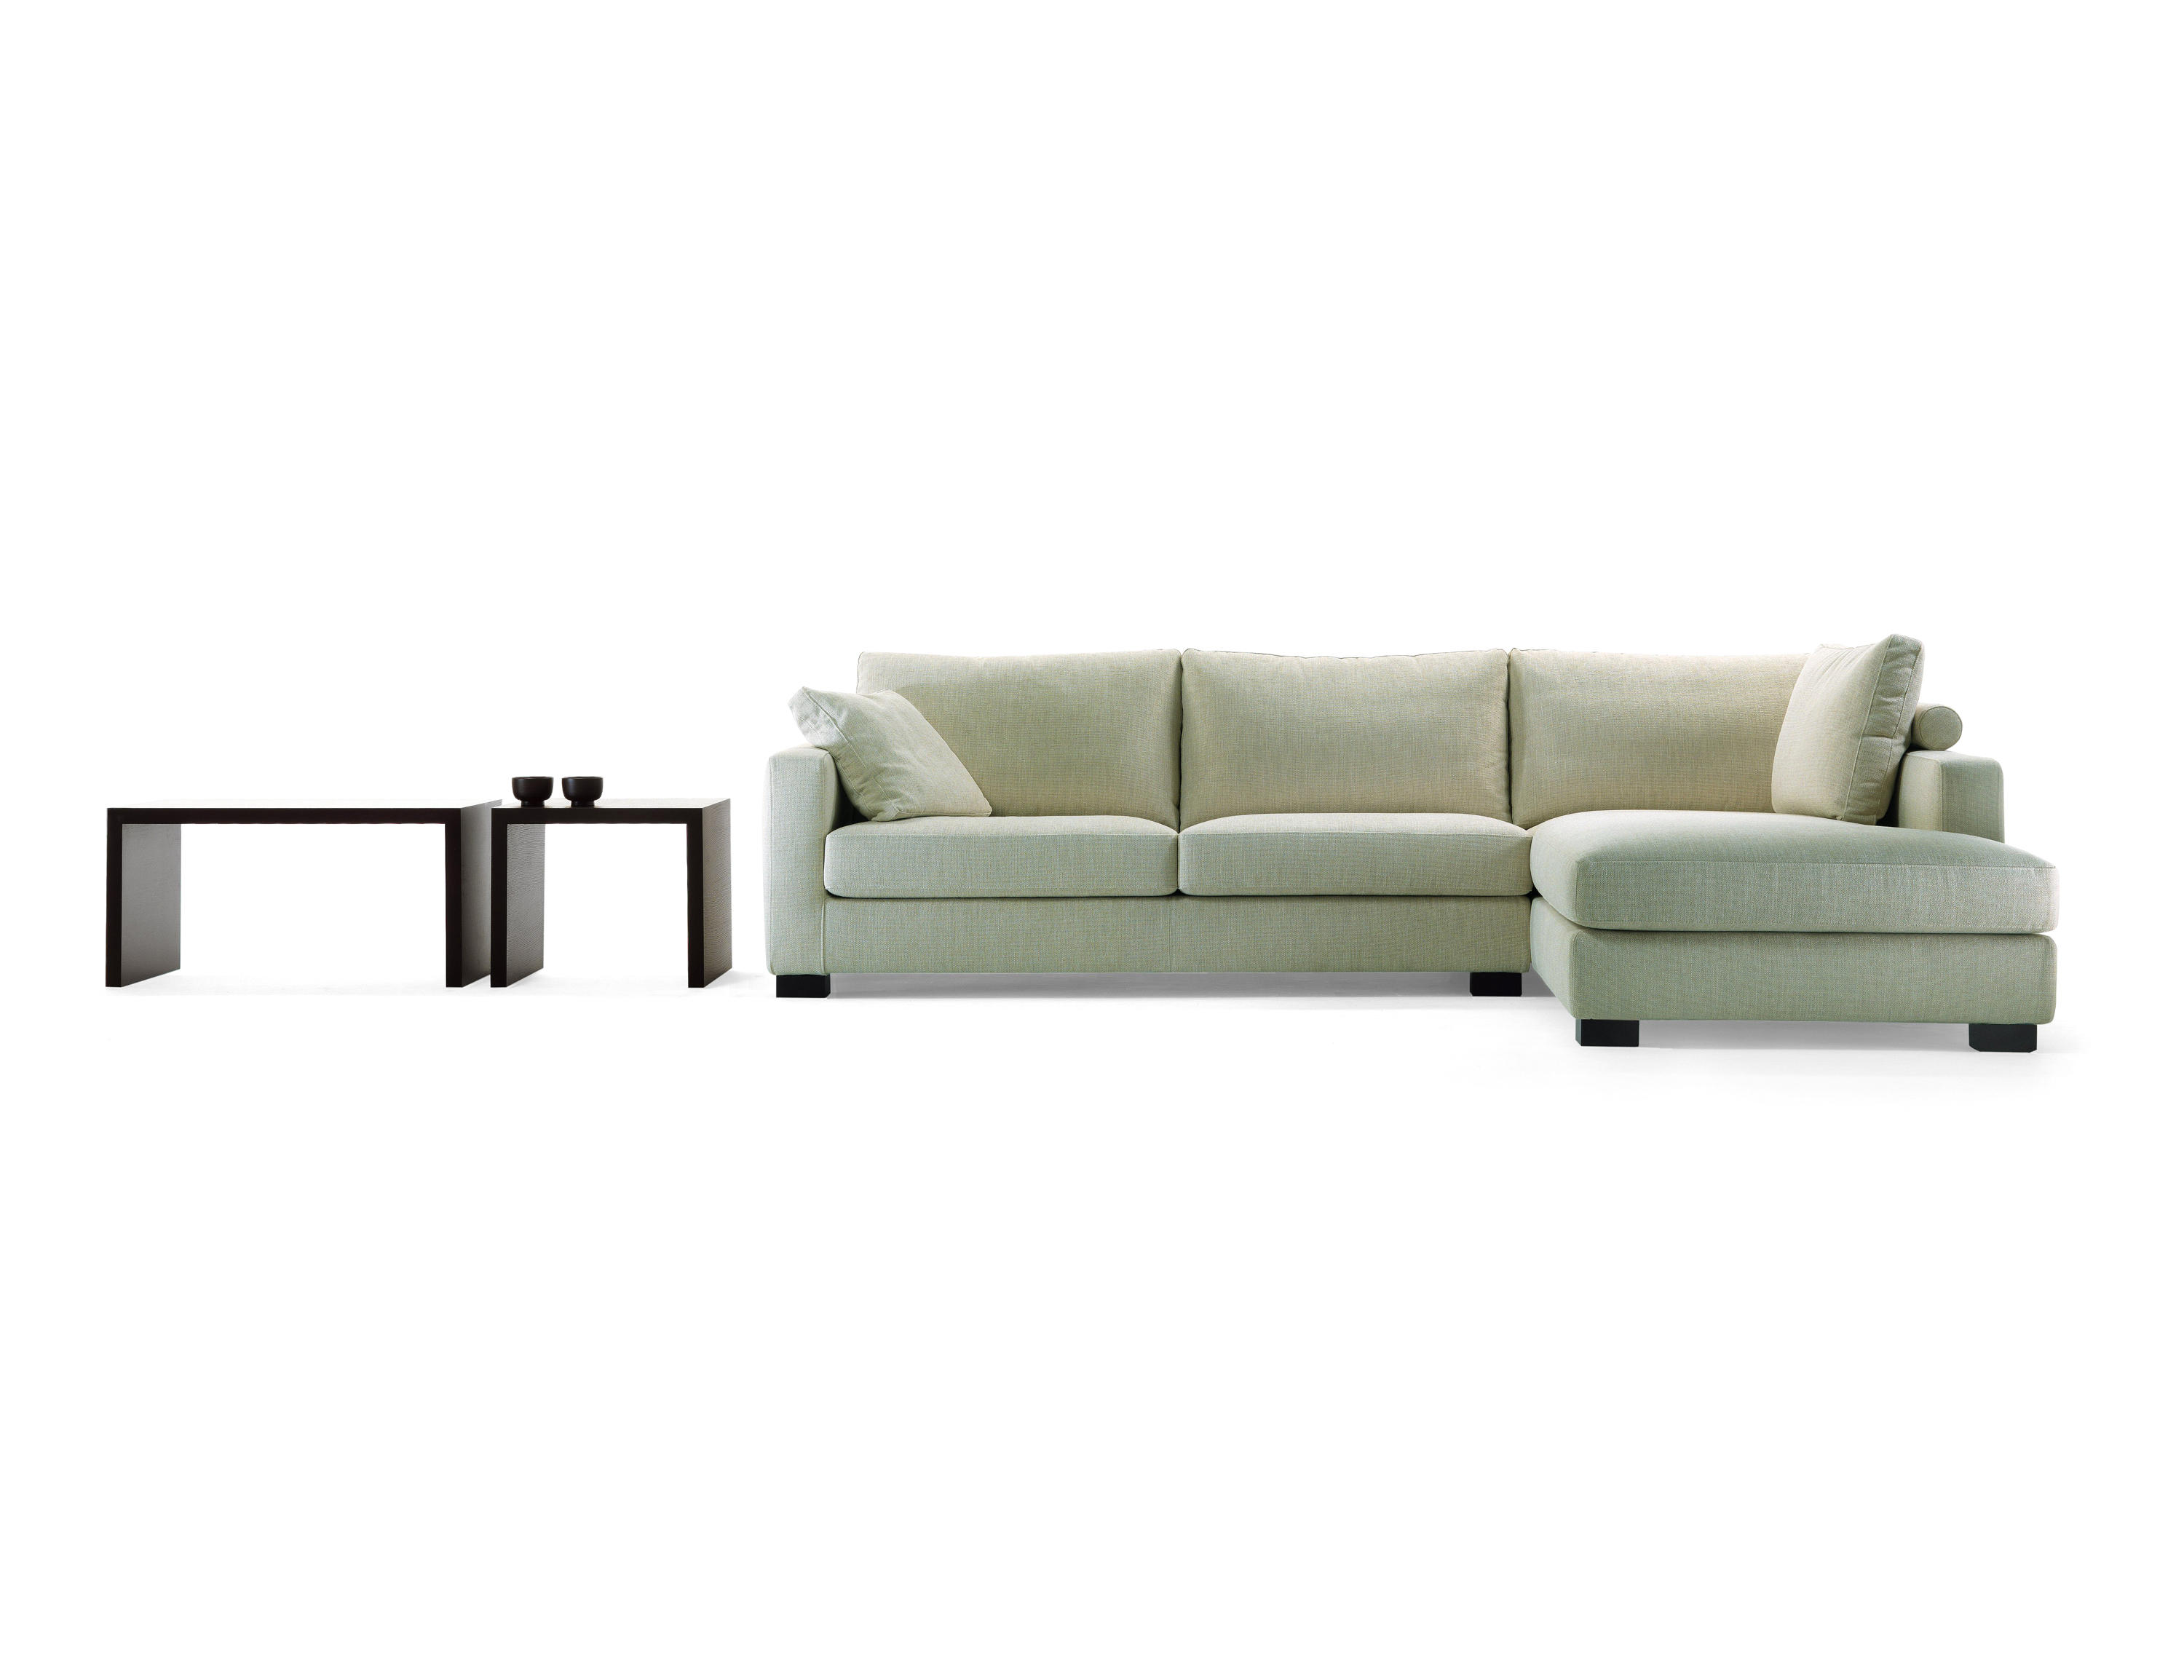 Oliver sofa oliver sofa jesse pomphome thesofa for Couch 4 meter